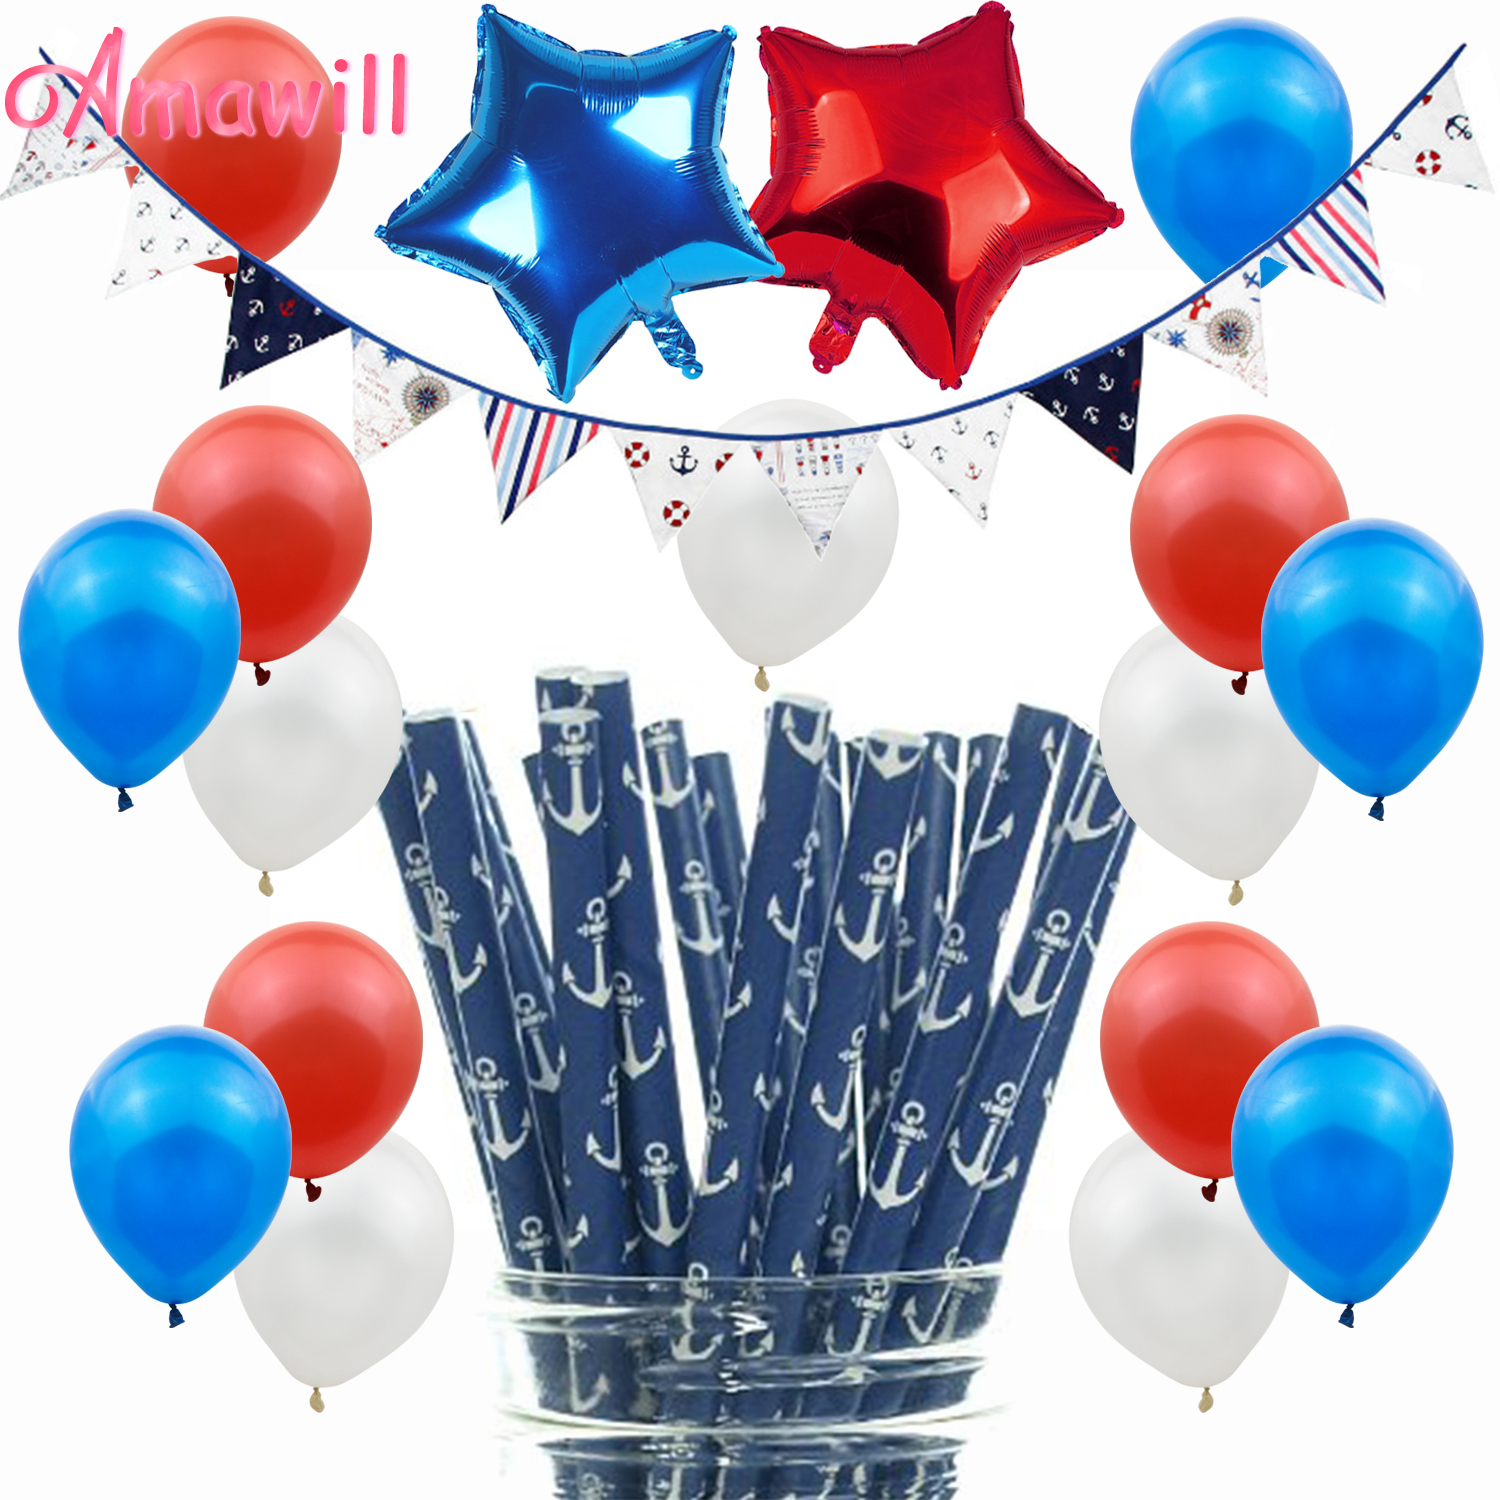 Us 1 04 19 Off Amawill Nautical Theme Party Decorations Kids Birthday Anchor Pennant Cotton Banner Baby Shower Boys Birthday Party Supplies 8d In